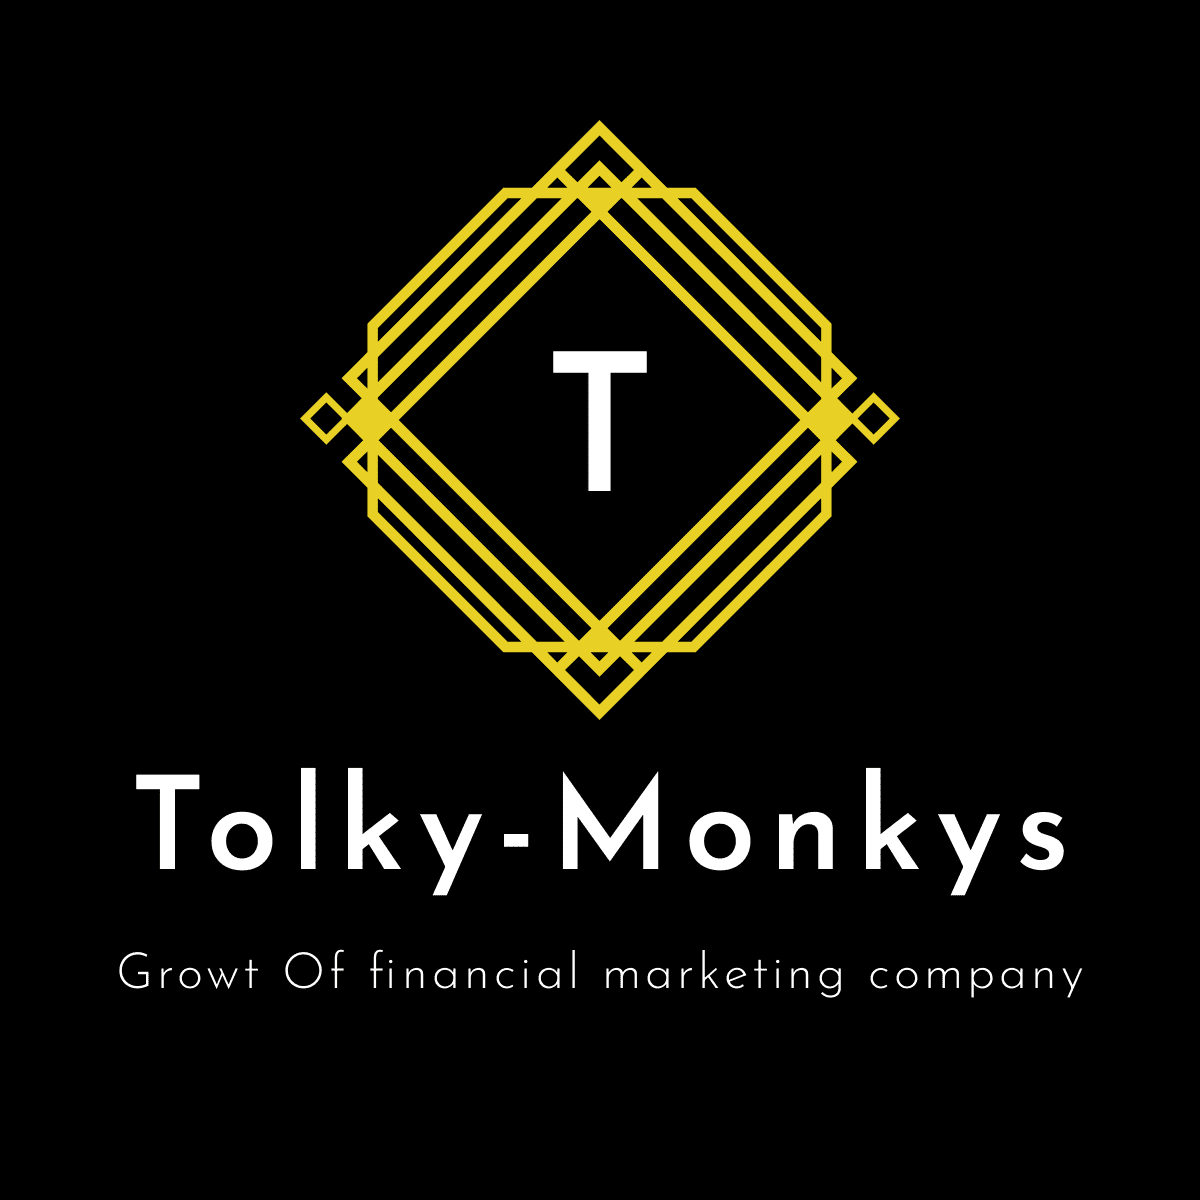 Tolky-Monkys